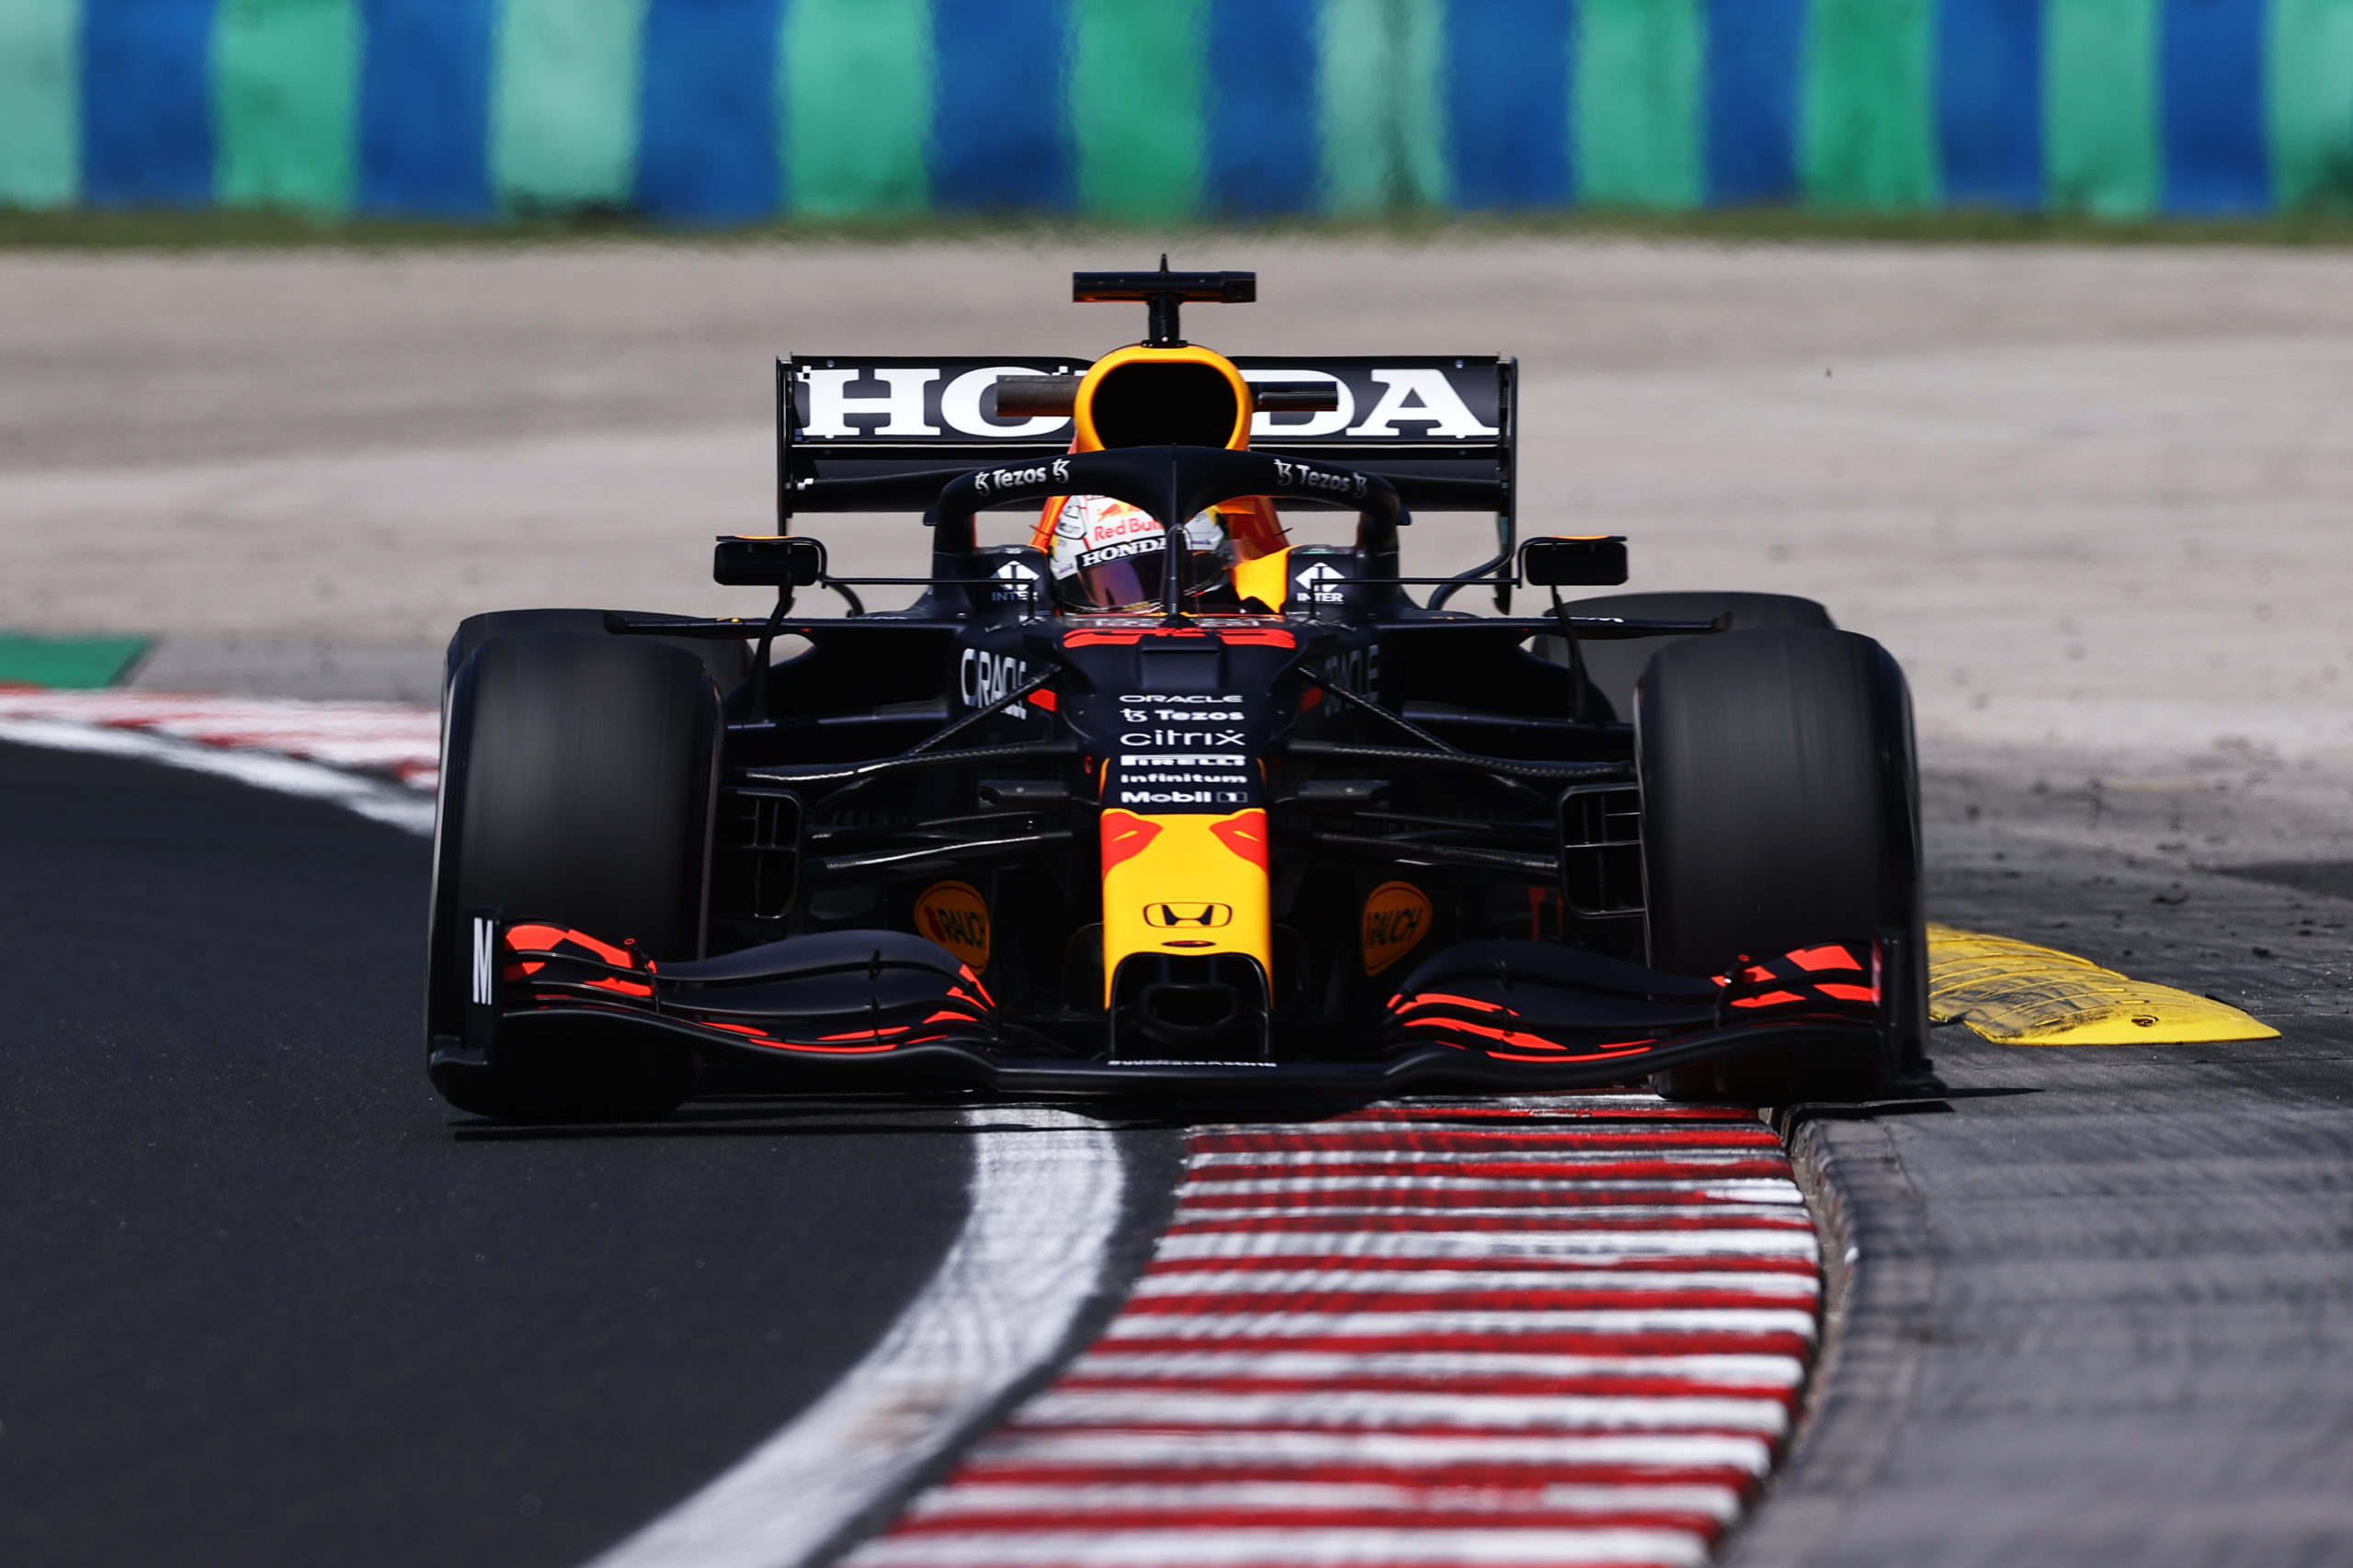 BUDAPEST, HUNGARY - JULY 30: Max Verstappen of the Netherlands driving the (33) Red Bull Racing RB16B Honda during practice ahead of the F1 Grand Prix of Hungary at Hungaroring on July 30, 2021 in Budapest, Hungary. (Photo by Lars Baron/Getty Images) // Getty Images / Red Bull Content Pool  // SI202107300154 // Usage for editorial use only //